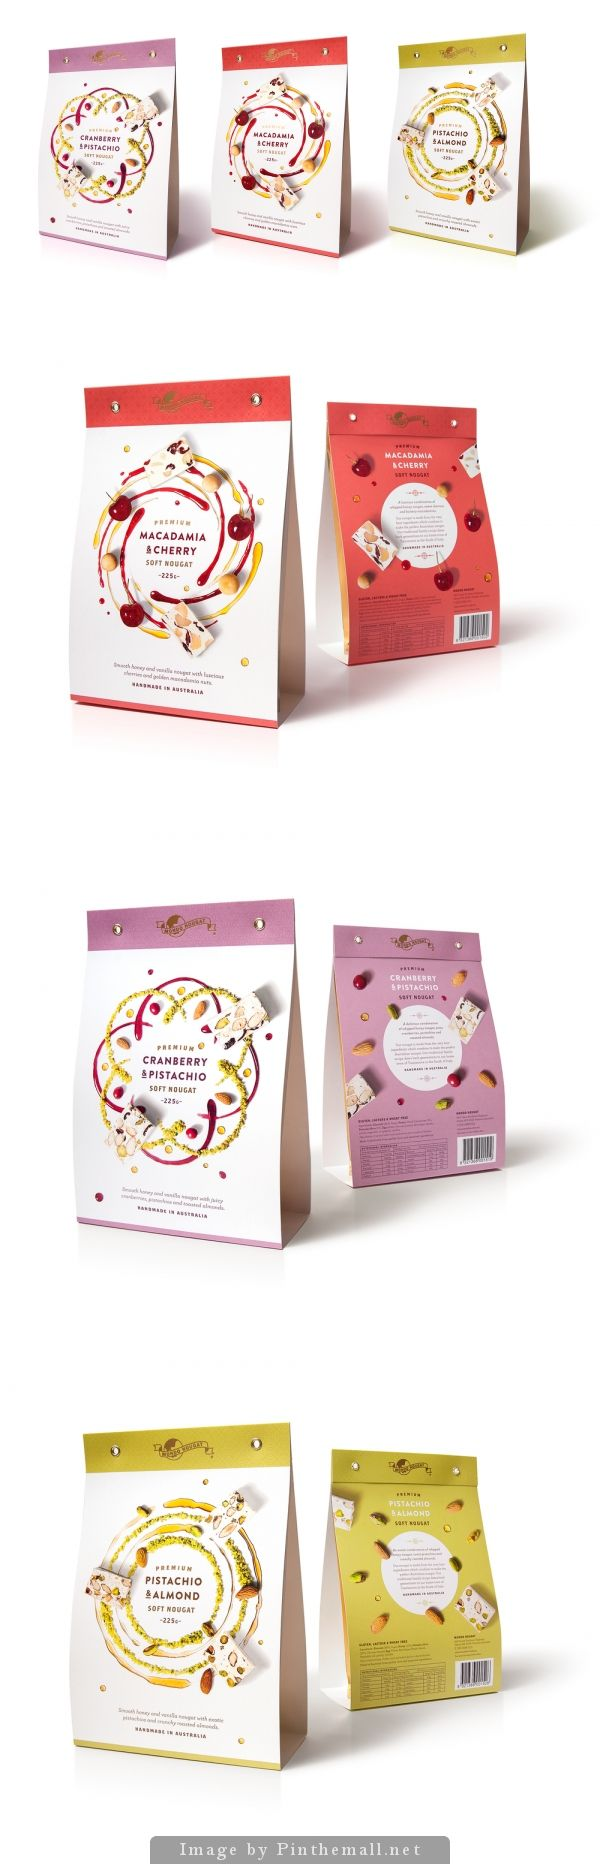 Mondo Nougat | Design | Packaging | Packaging design